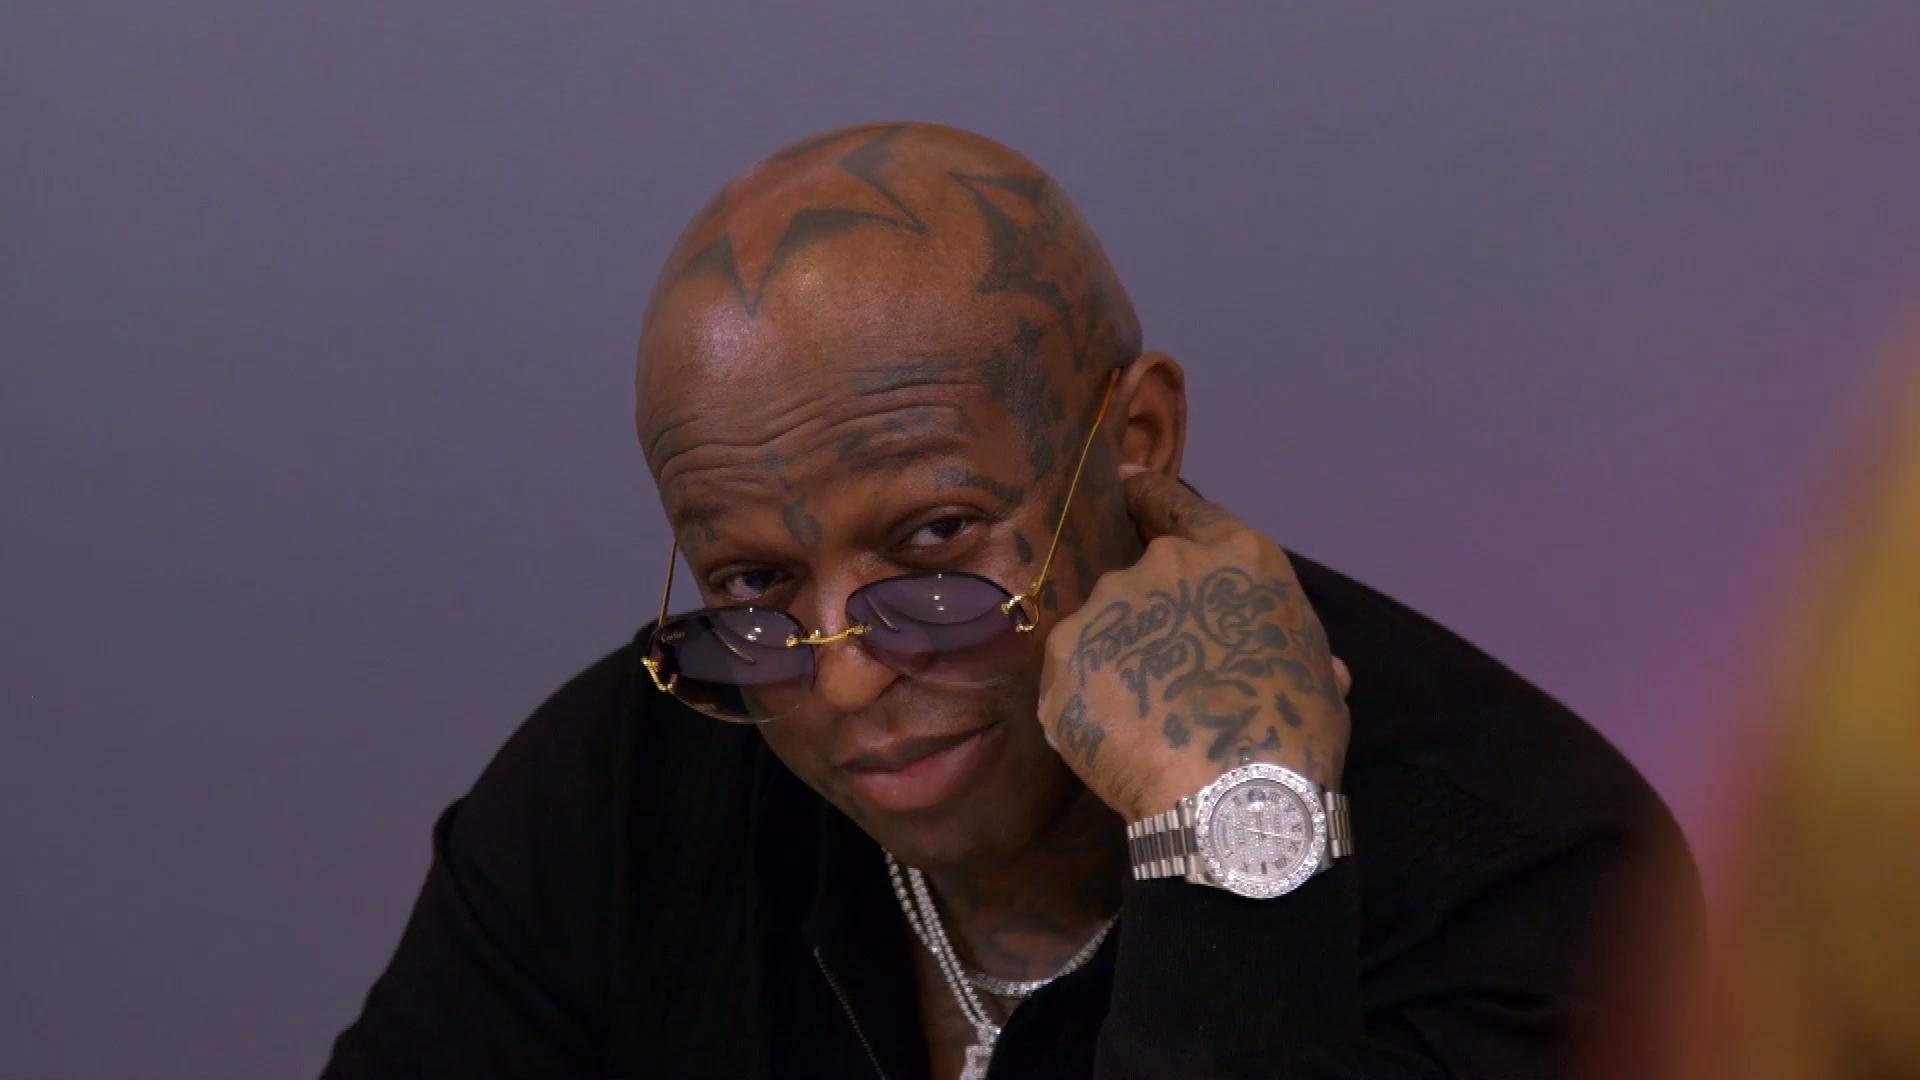 Birdman Does Not Tolerate Disrespect From The Media